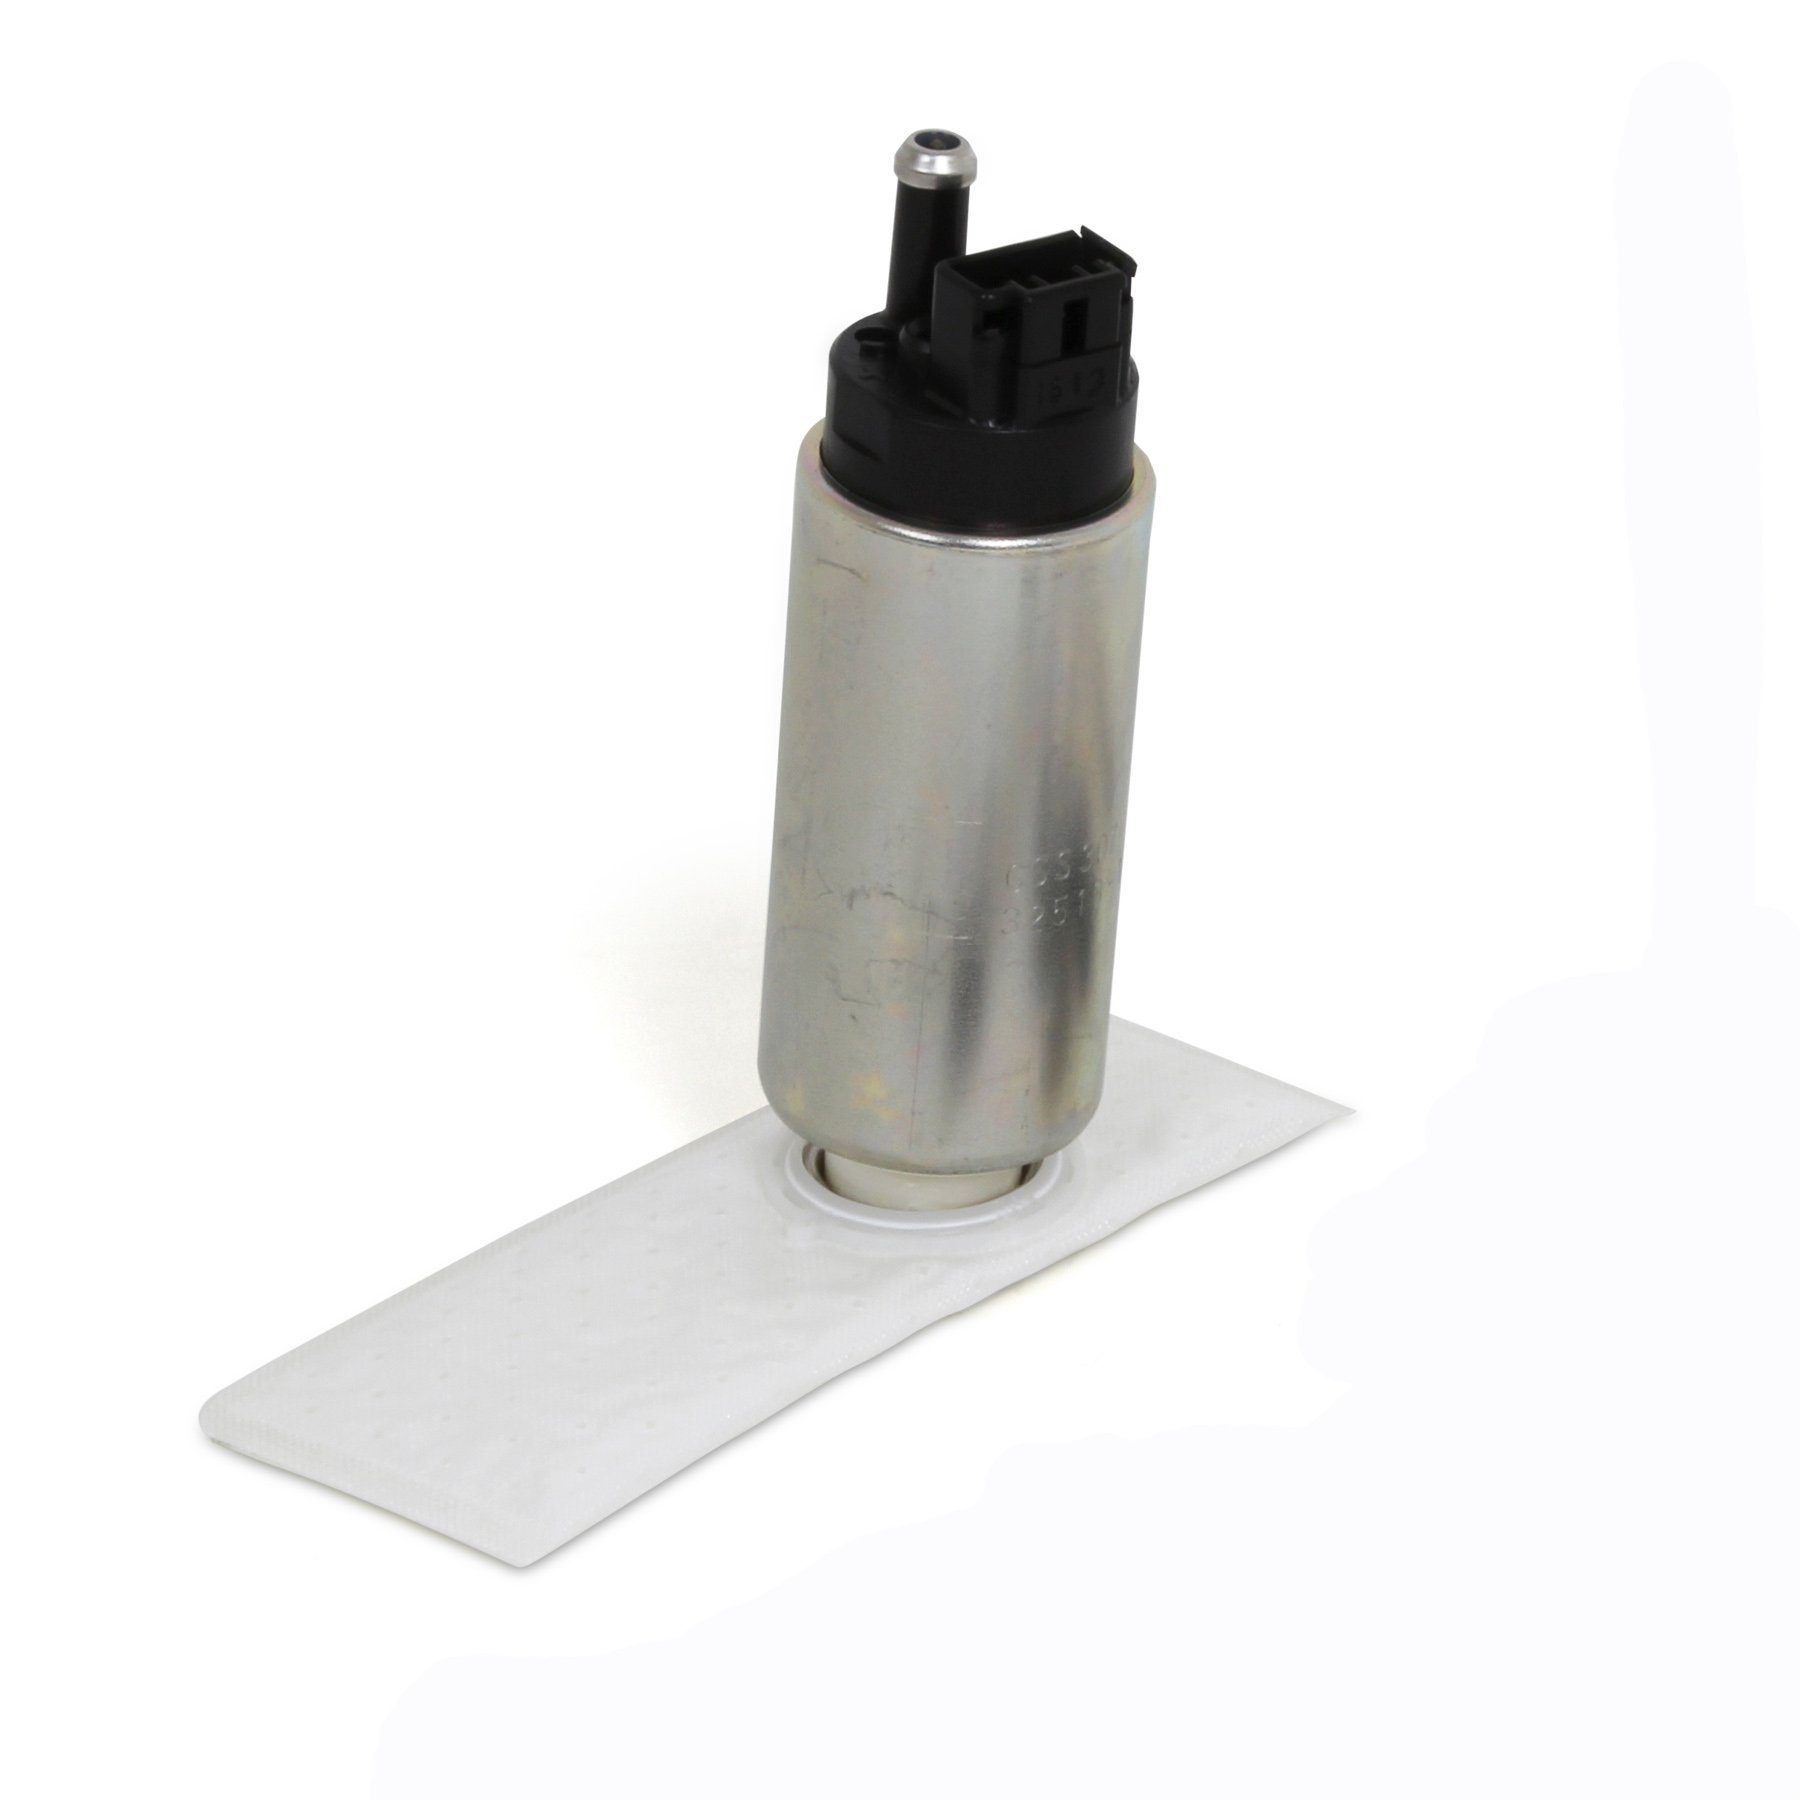 BBK 1607 255 LPH Direct Fit Replacement High Flow In-Tank Fuel Pump Kit for Ford Mustang by BBK Performance (Image #2)